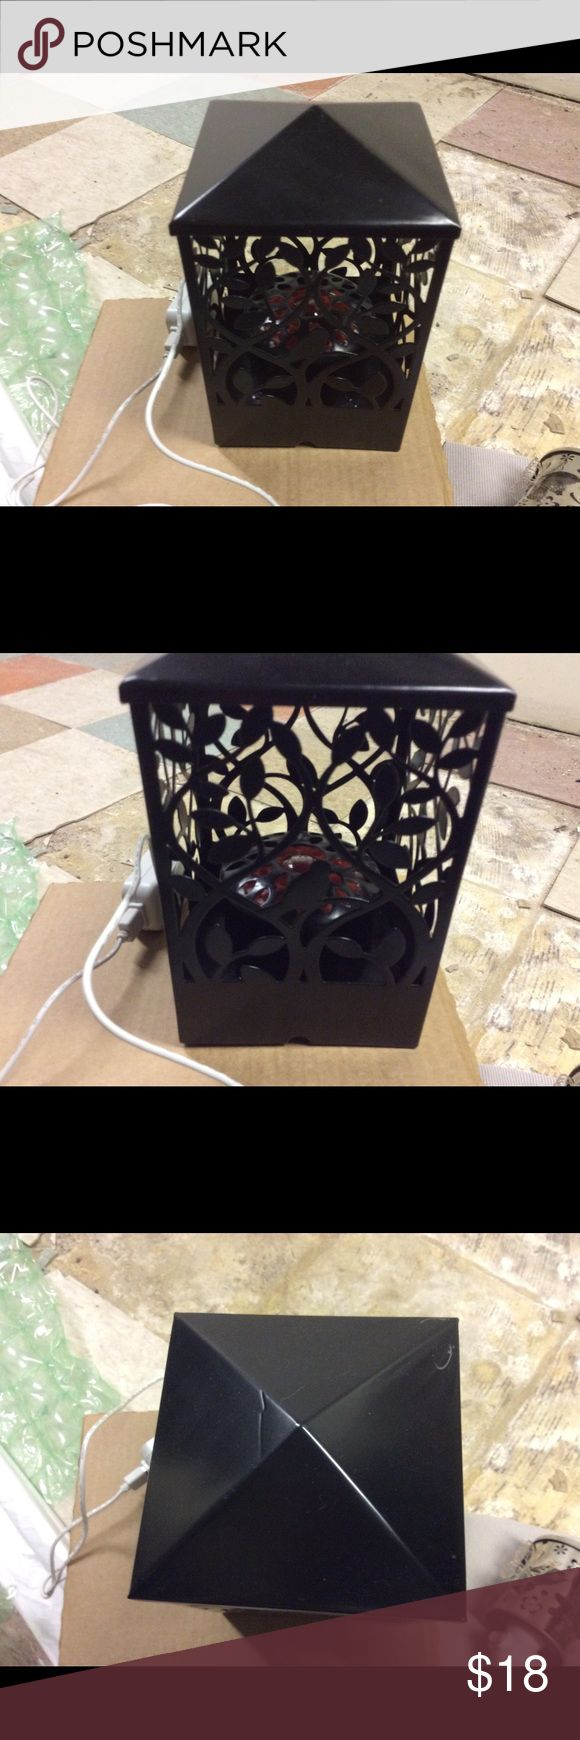 Electric air freshener Electric room air freshener. Great condition has a few scratches on the top lid. Great for people who have children and animals Other